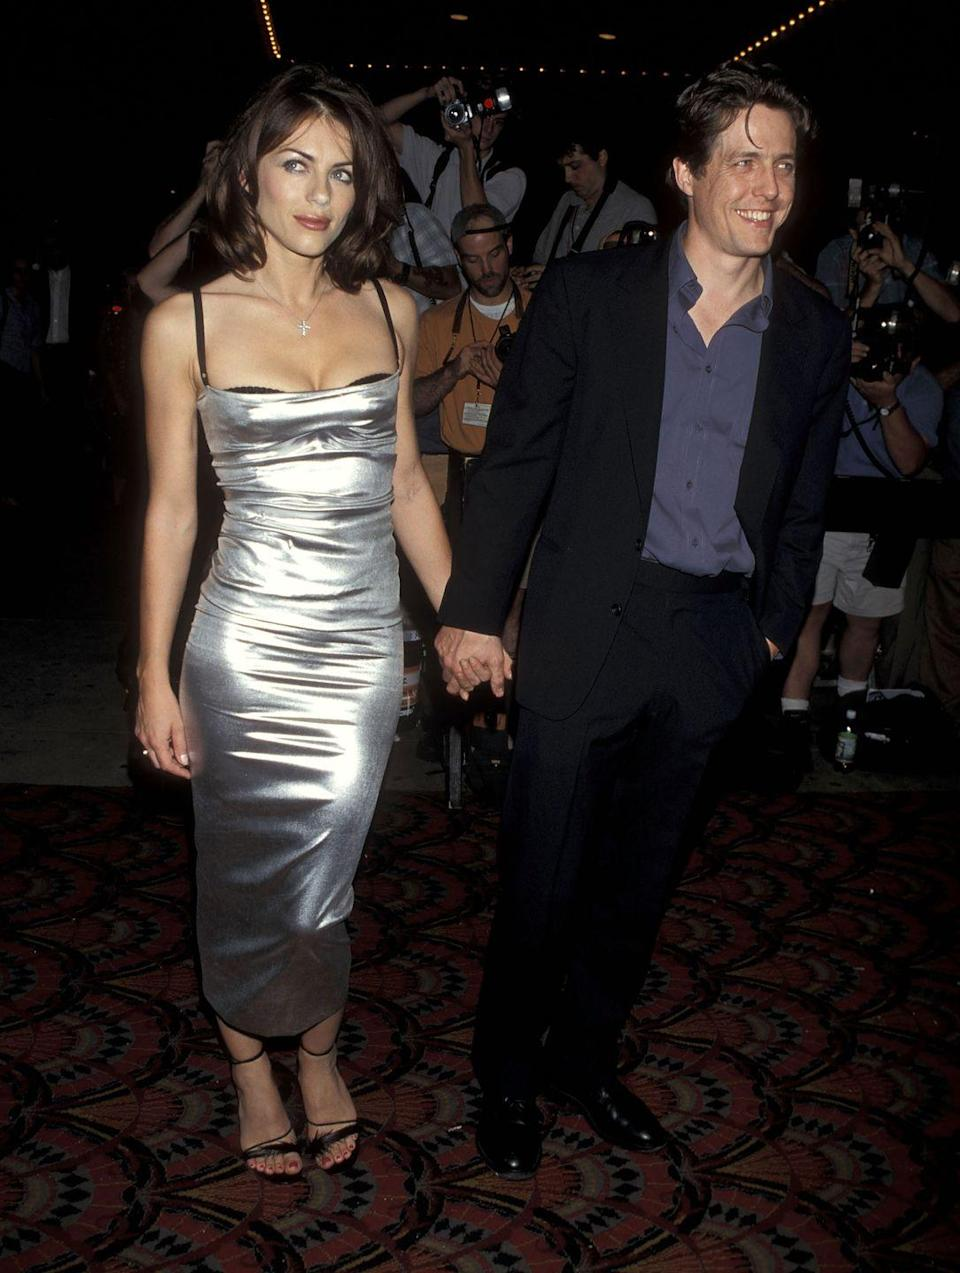 <p>Elizabeth played Sandra in <em>Permanent Midnight </em>in the late '90s, which provided an opportunity for Hugh to support <em>her </em>on the red carpet. How amazing is her futuristic dress btw?</p>